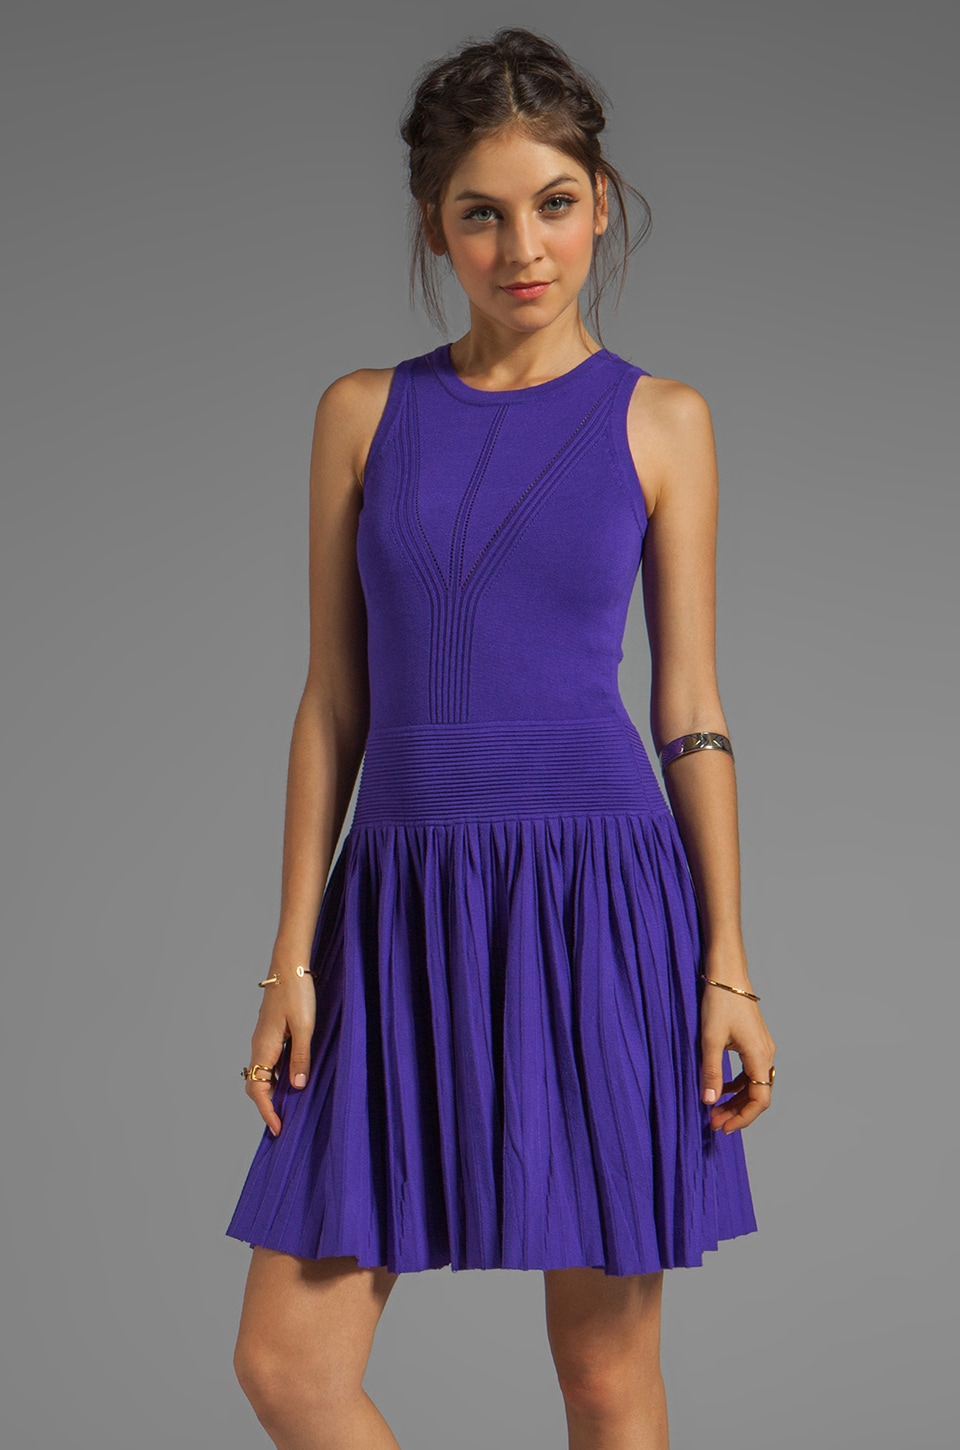 MILLY April Knits Josephine Pleated Dress in Grape